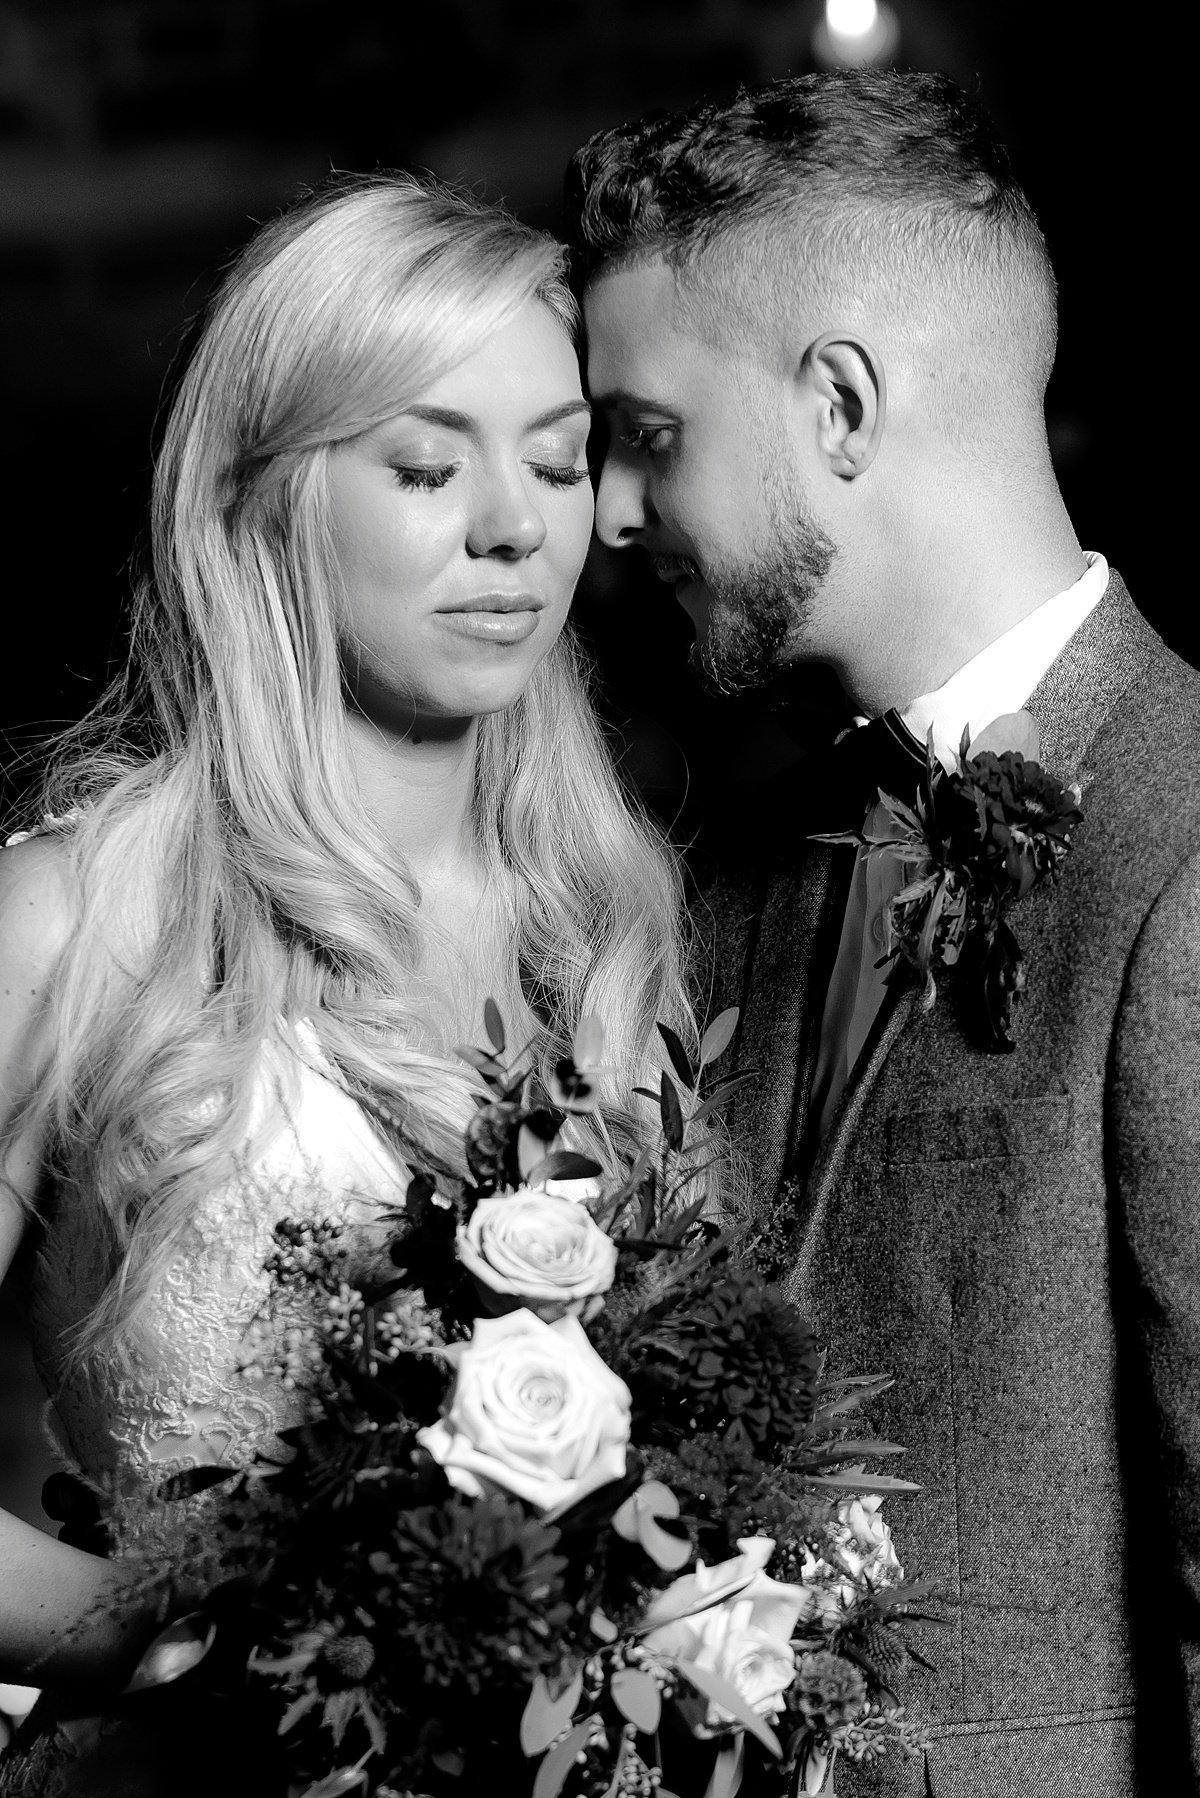 Mono wedding photograph of bride and groom